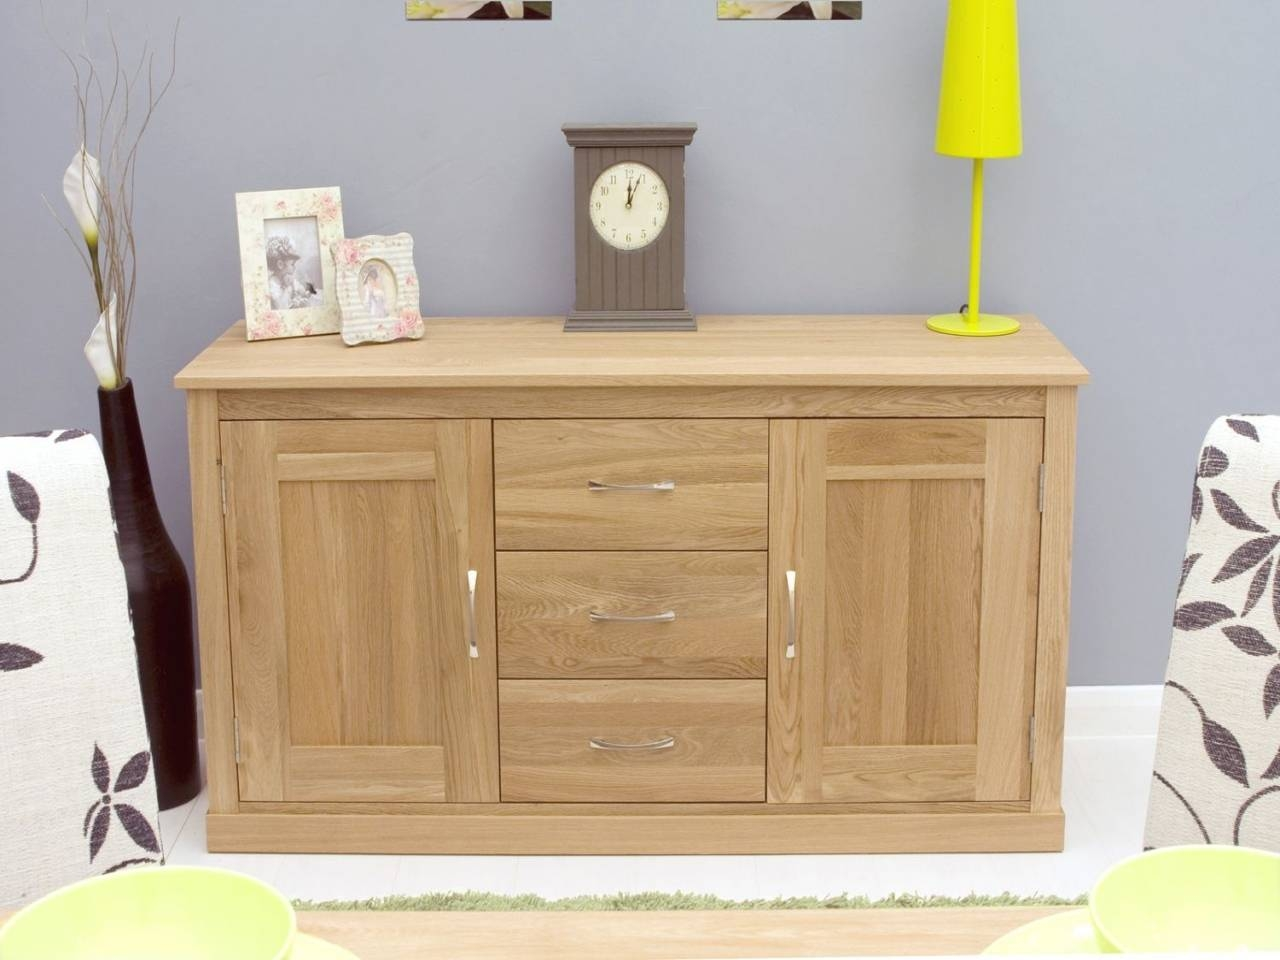 Marvellous Oak Sideboards For Dining Room Pictures - 3D House for Oak Sideboards (Image 14 of 30)